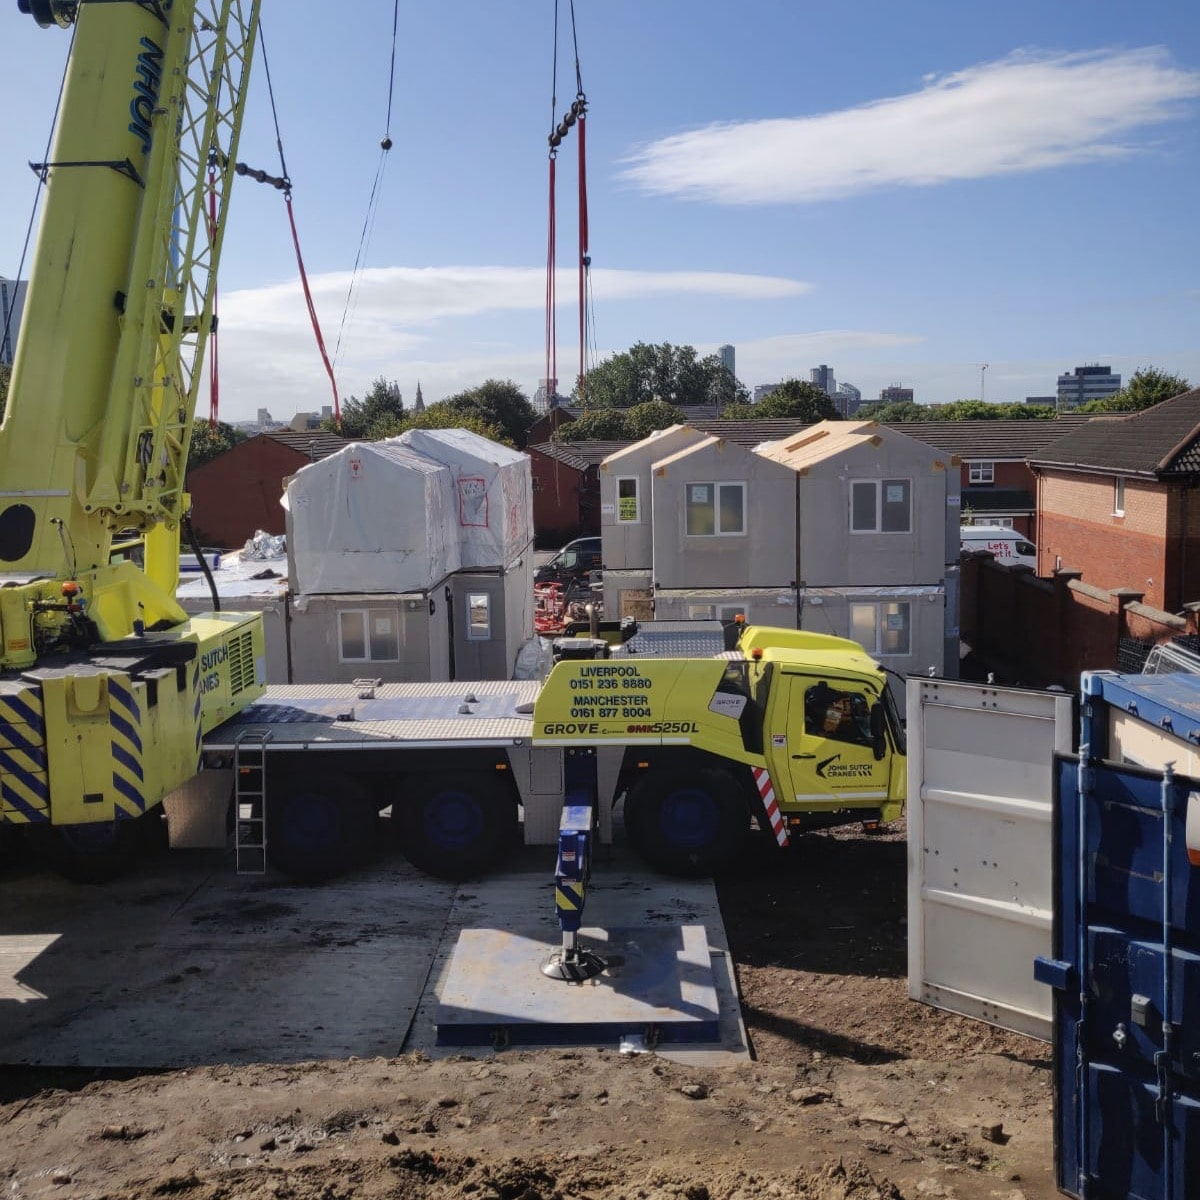 Liverpool City Council's new 'ethical housing company' Foundations set to partner with SPACE|MODULAR to deliver energy efficient modular homes for rent as part of their 10,000 new homes target